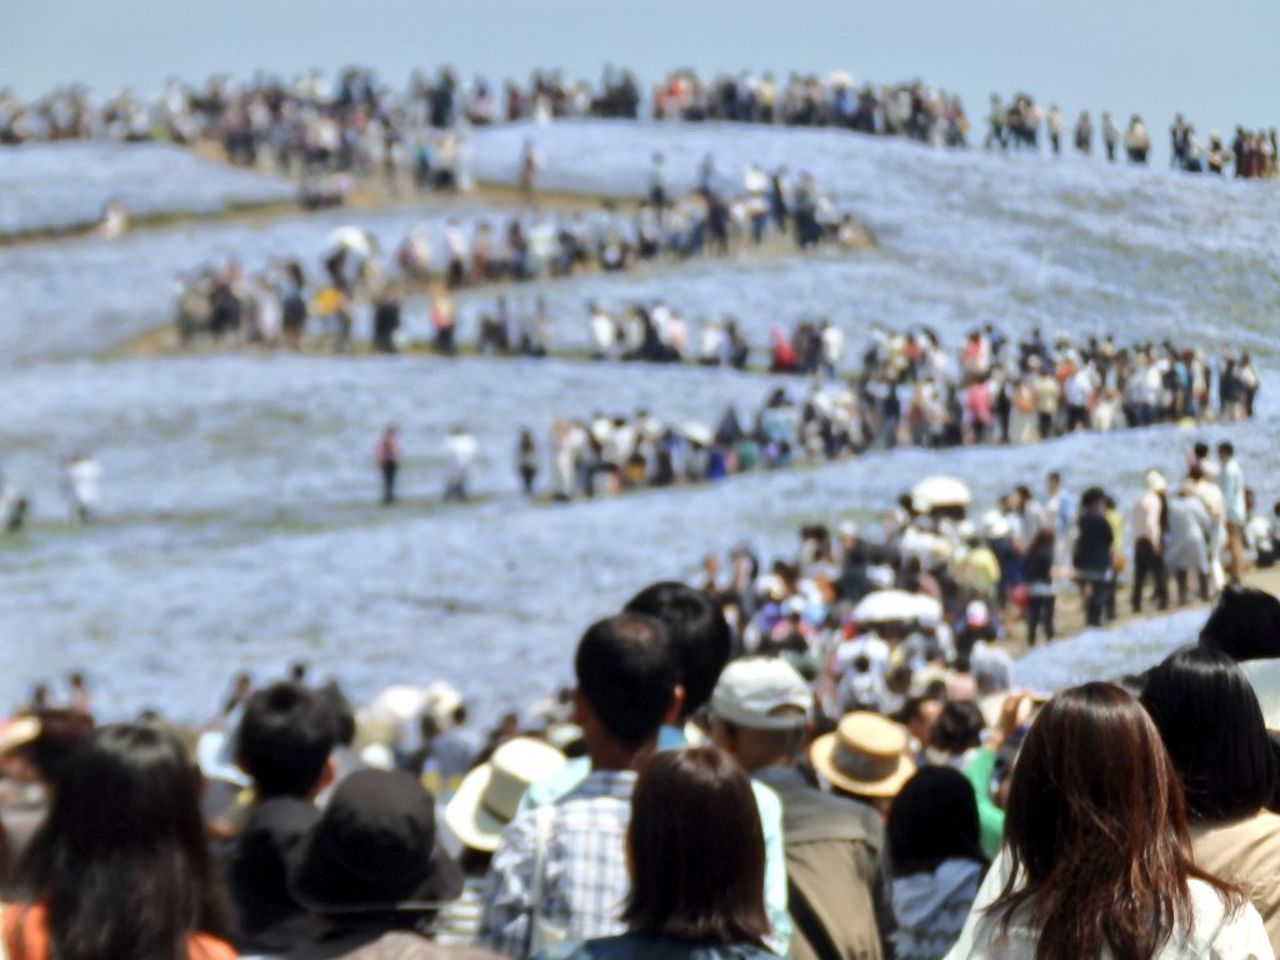 beach, large group of people, crowded, crowd, large group of animals, sea, people, outdoors, day, sky, adult